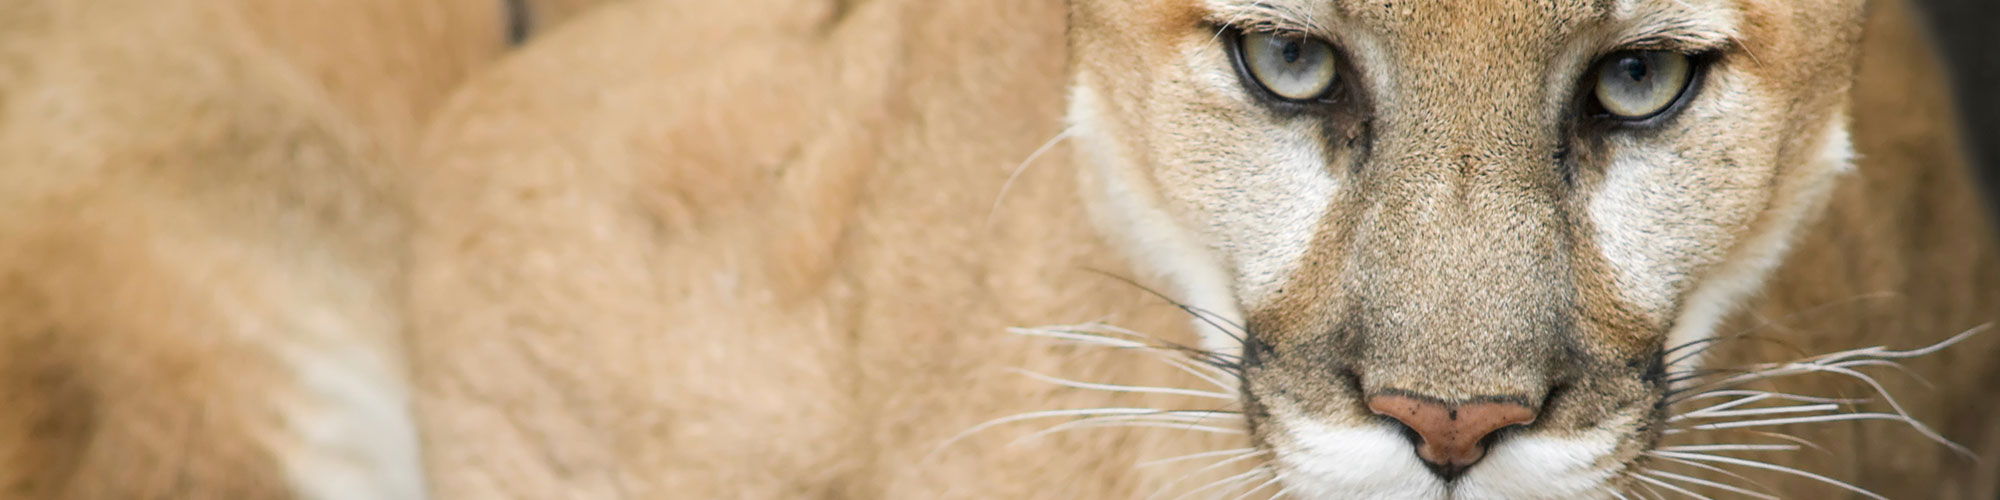 Close up of mountain lion face